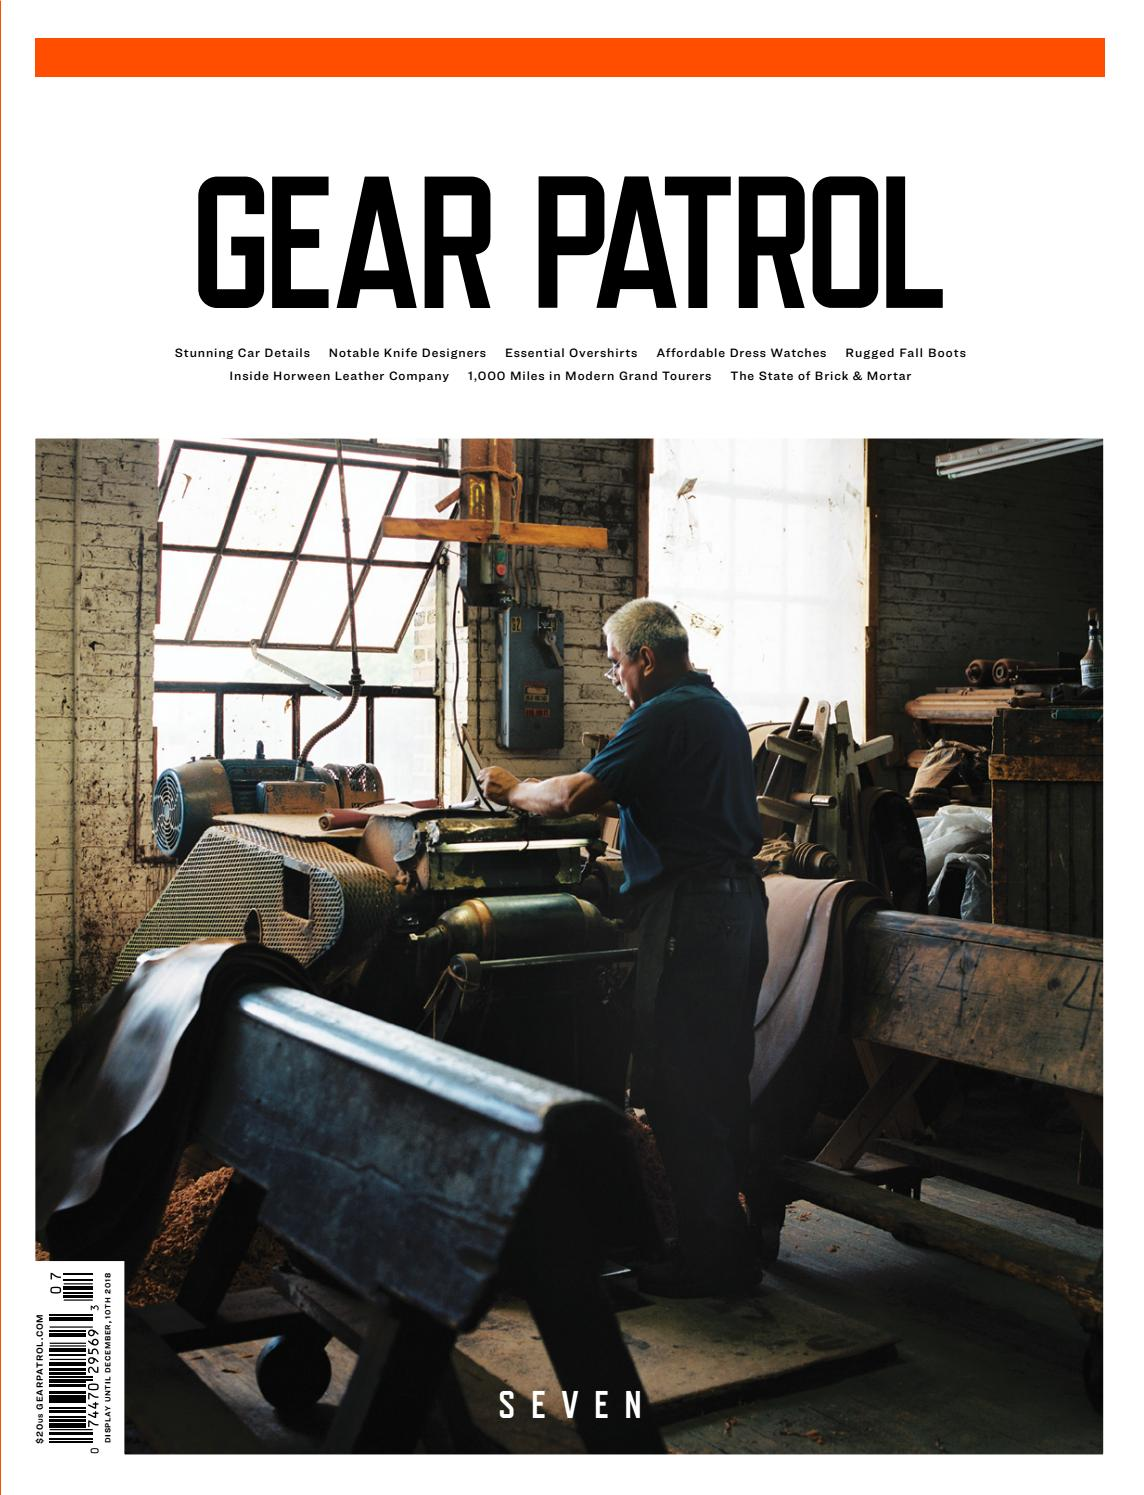 Gear Patrol Magazine Issue Seven The Style And Design Issue By Gear Patrol Issuu